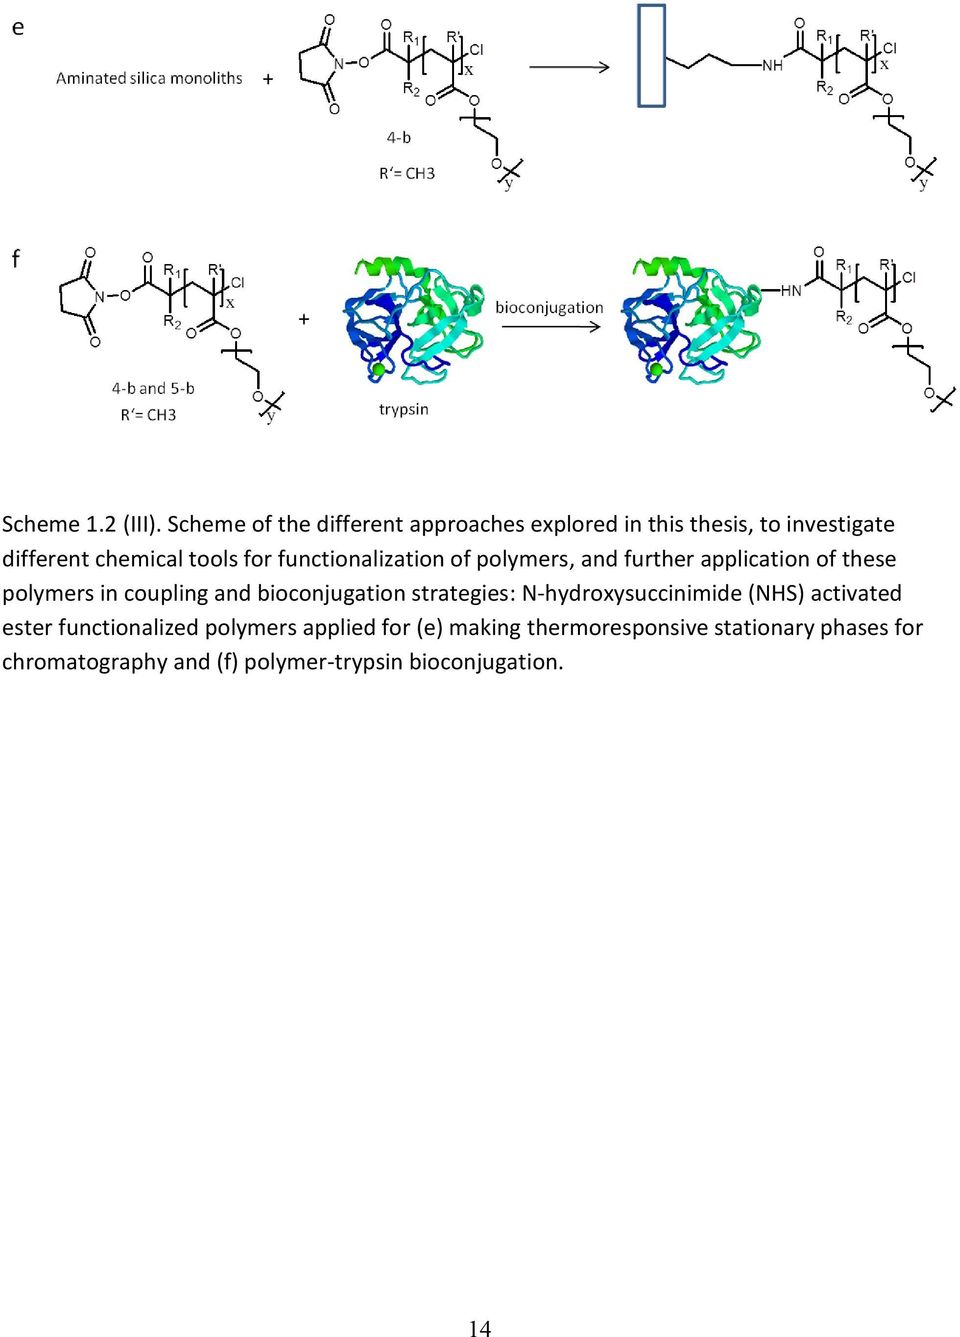 functionalization of polymers, and further application of these polymers in coupling and bioconjugation